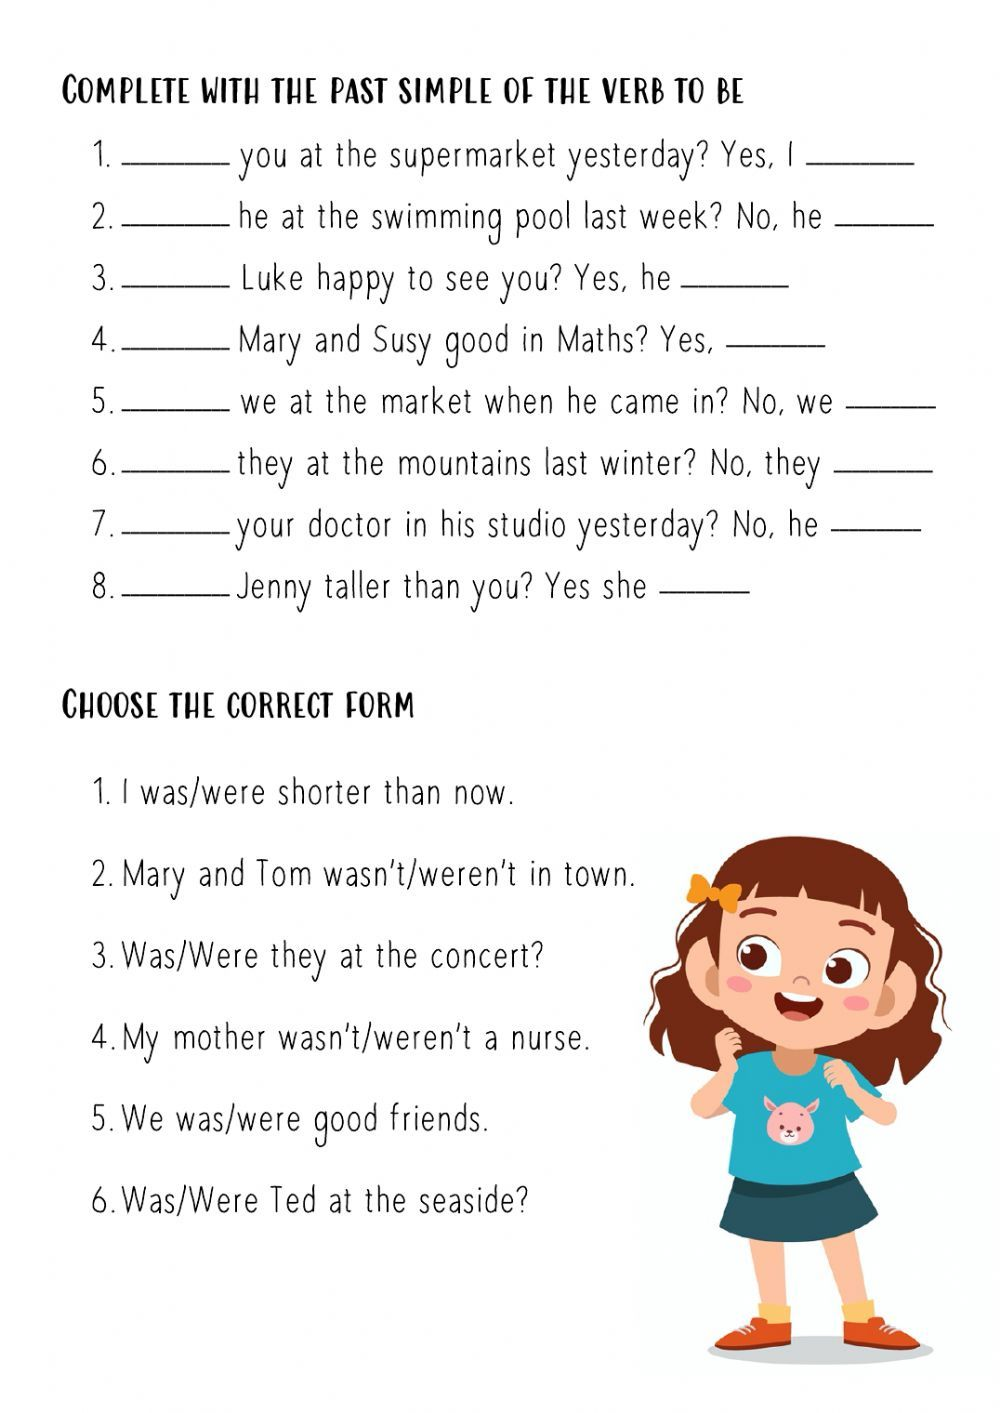 Past Simple To Be Interrogative Form Interactive Worksheet English Worksheets For Kids Teaching English Grammar Verb To Be Past [ 1413 x 1000 Pixel ]